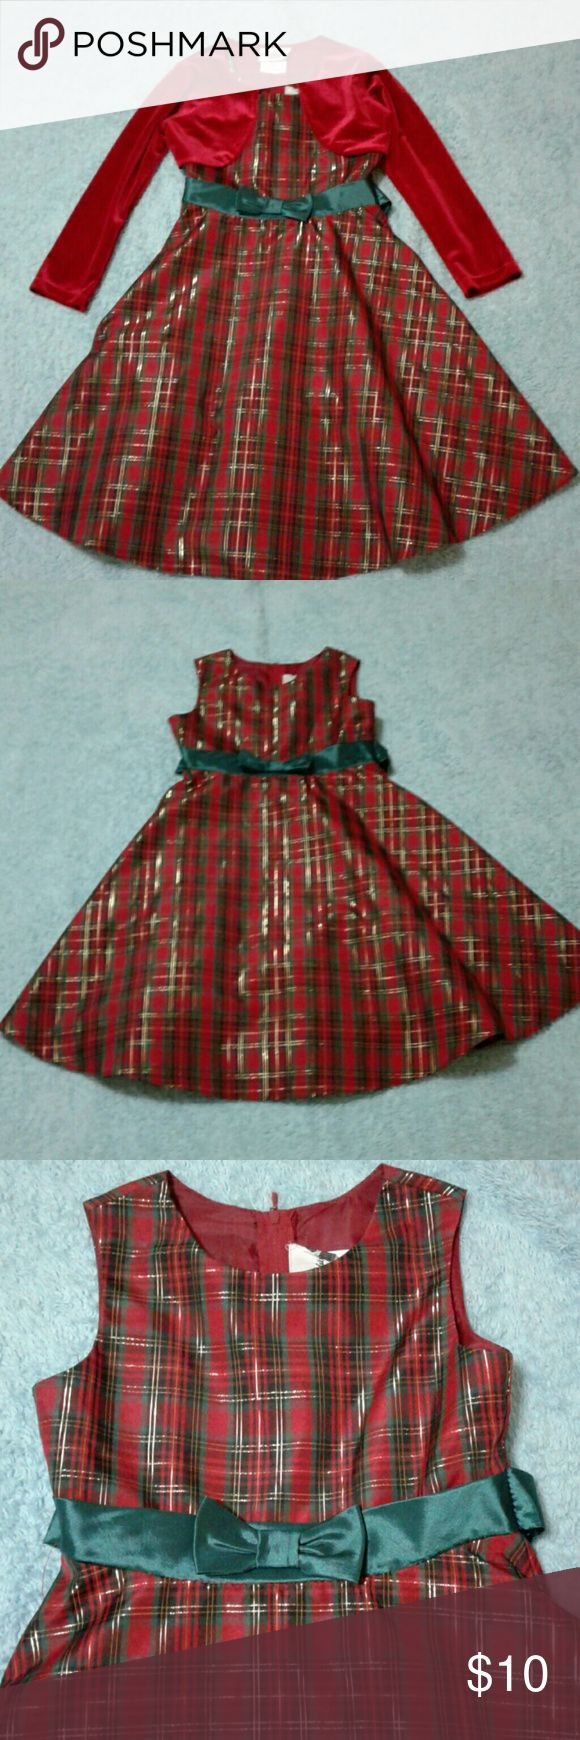 Beautiful Christmas Dress for Girls Rare Edittion Christmas  Dress Girls.Red and Green Plaid Dress with Cardigan .Only used once for Christmas ? Rare Editions Dresses Formal